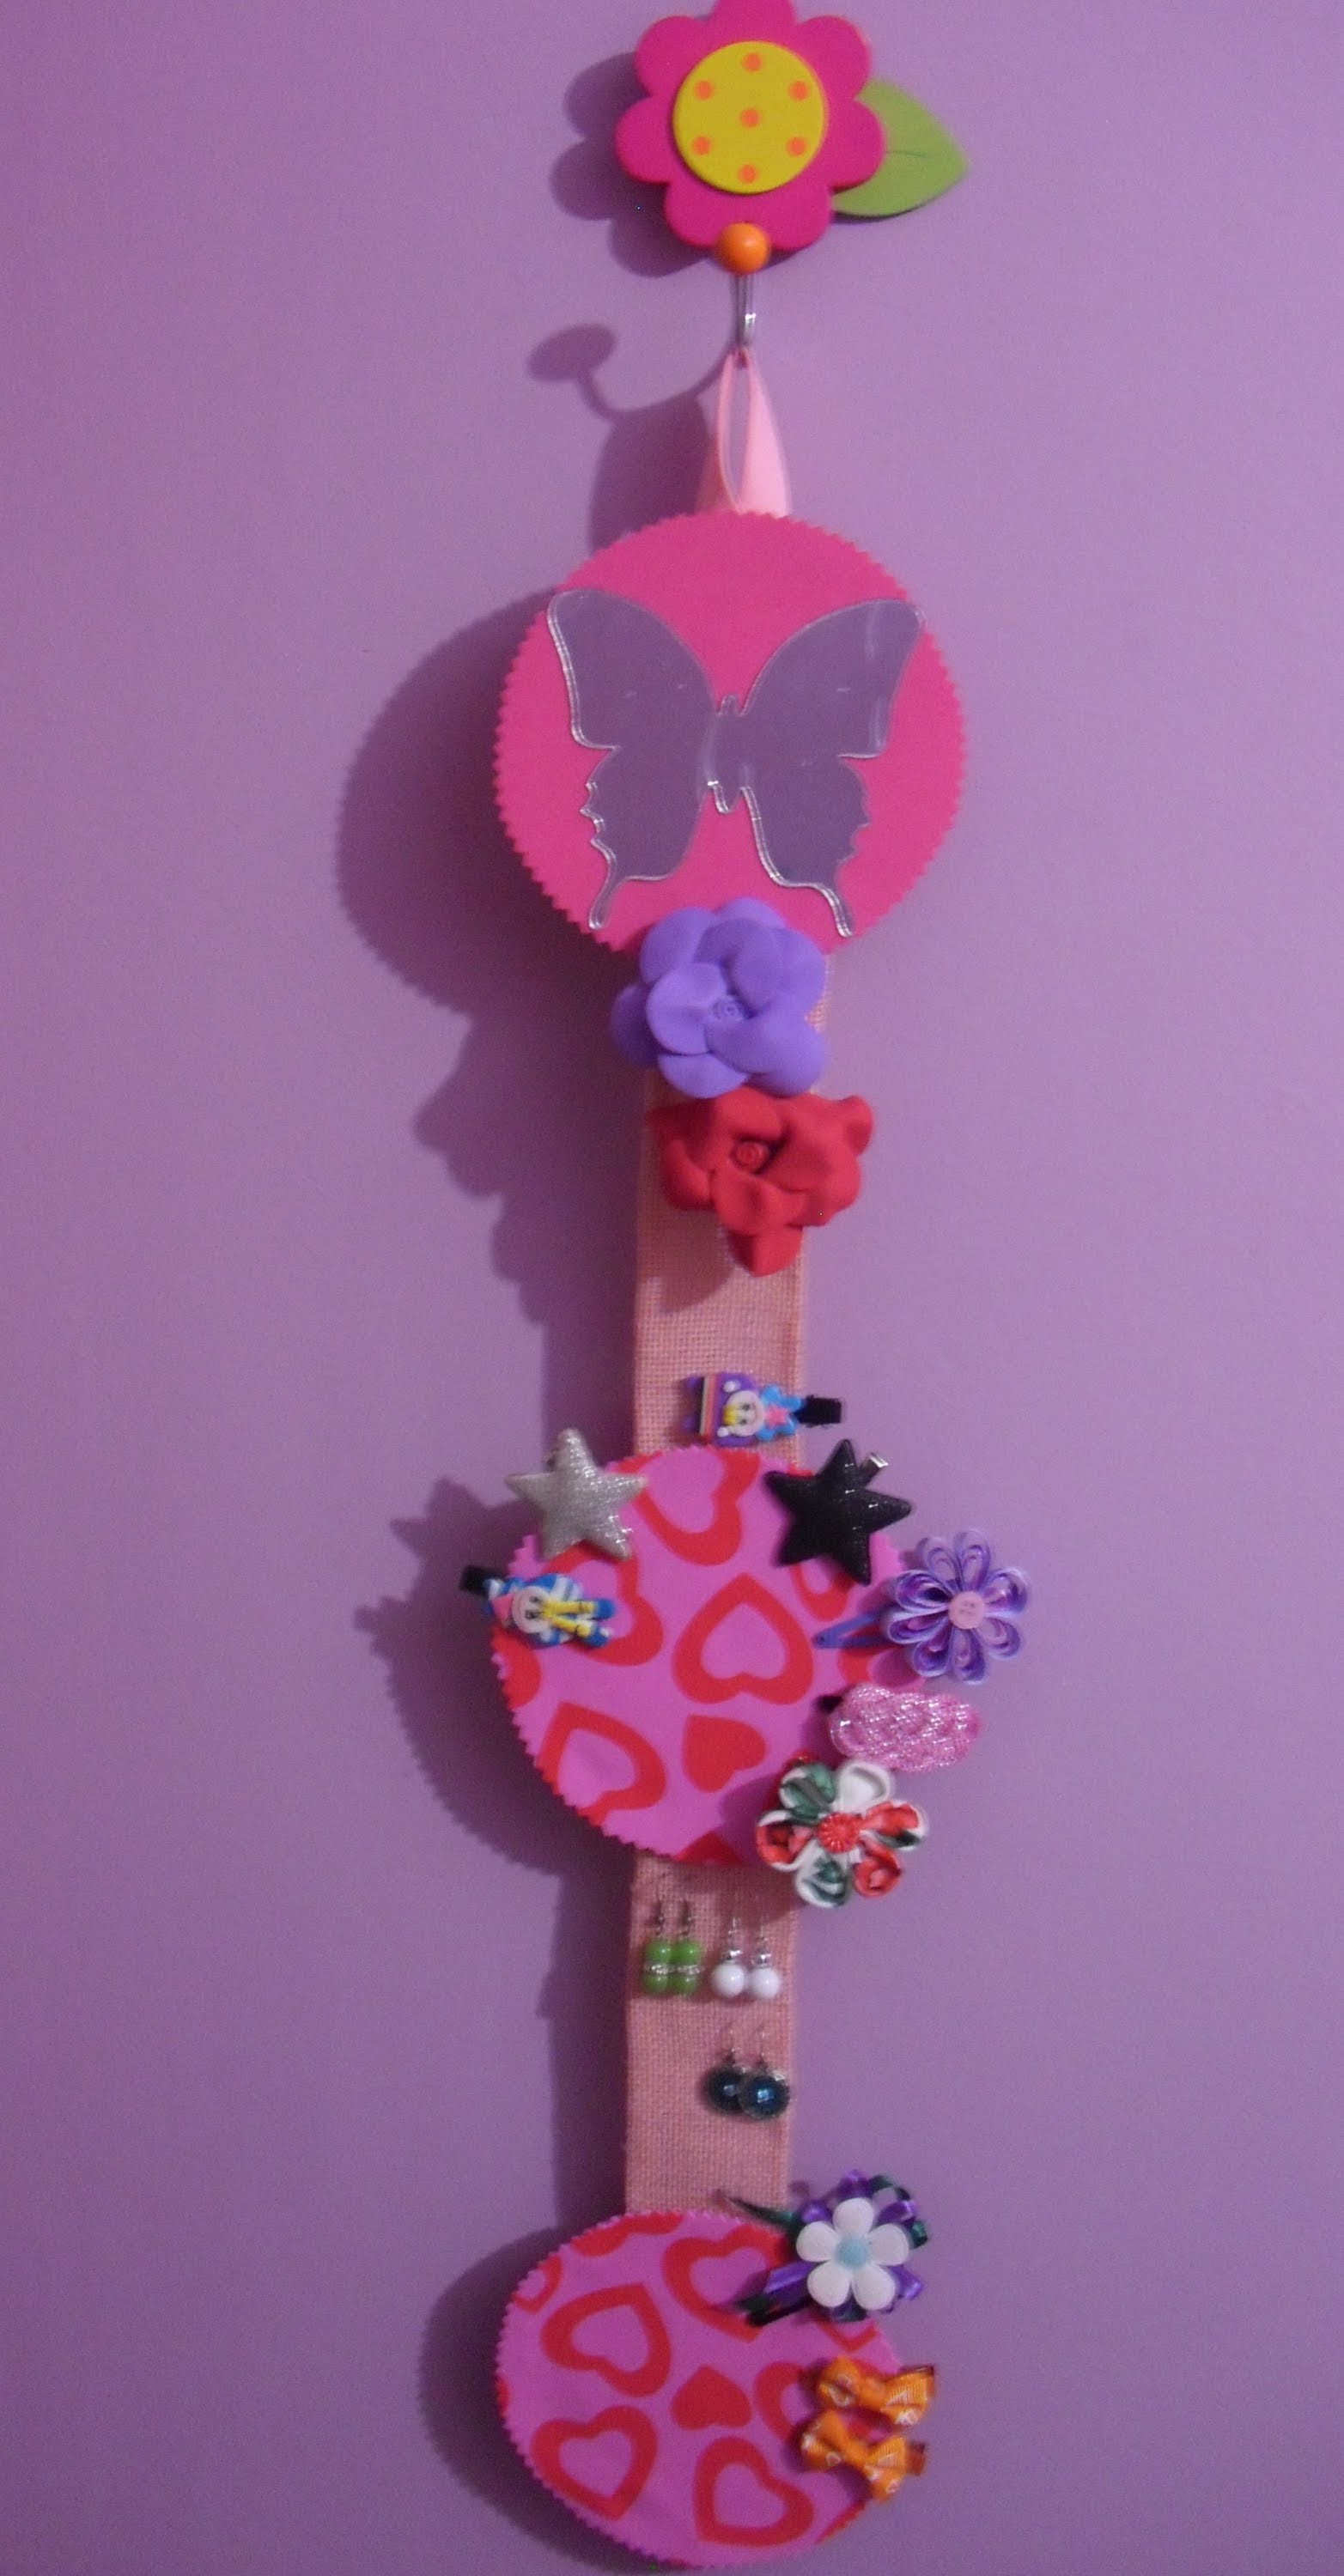 Organiza tus broches, pendientes y horquillas. organizer of earrings, brooches, and hair pins